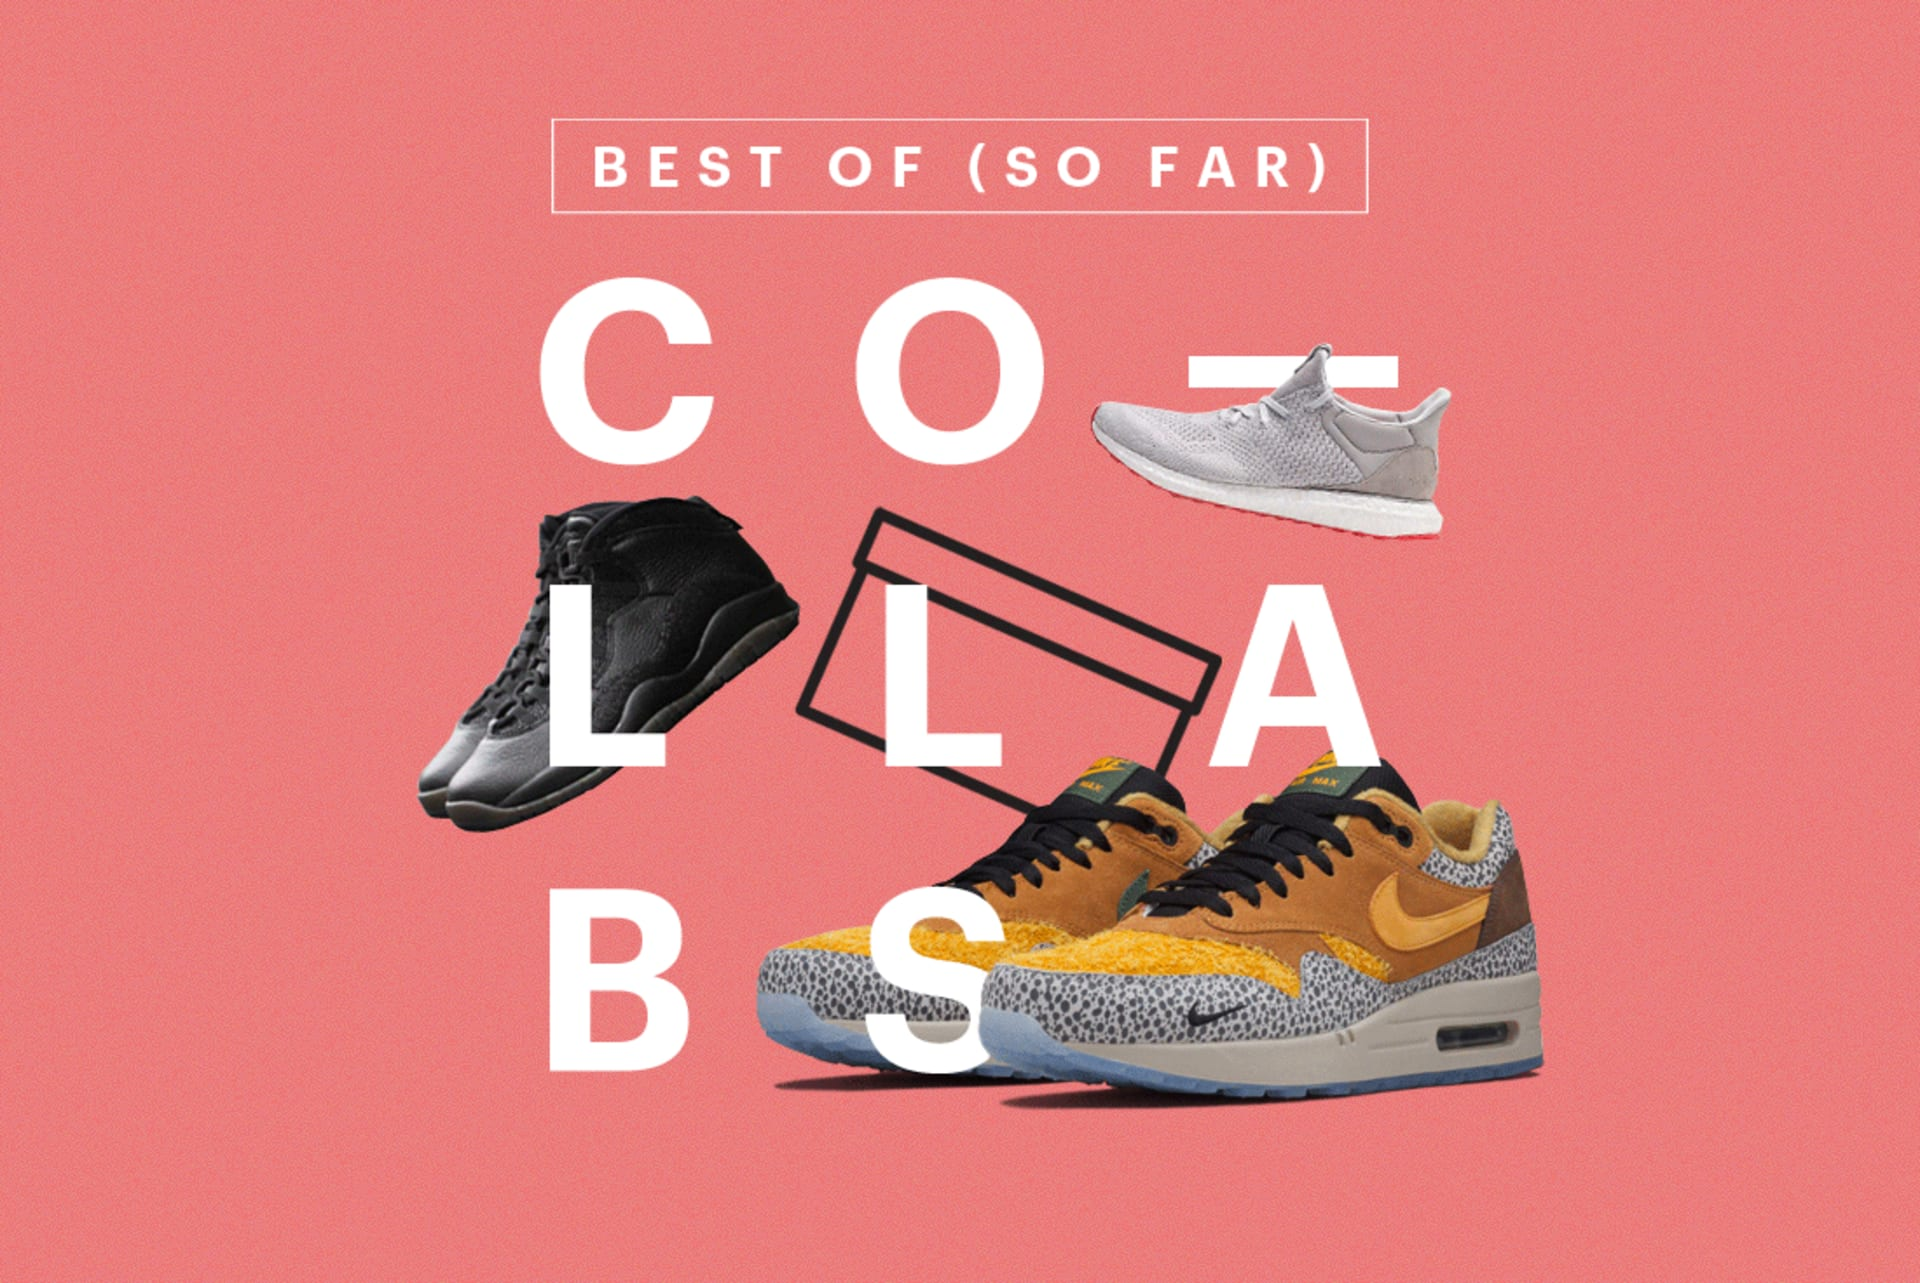 a78bdd4f72c3 The Best Sneaker Collaborations of 2016 (So Far)